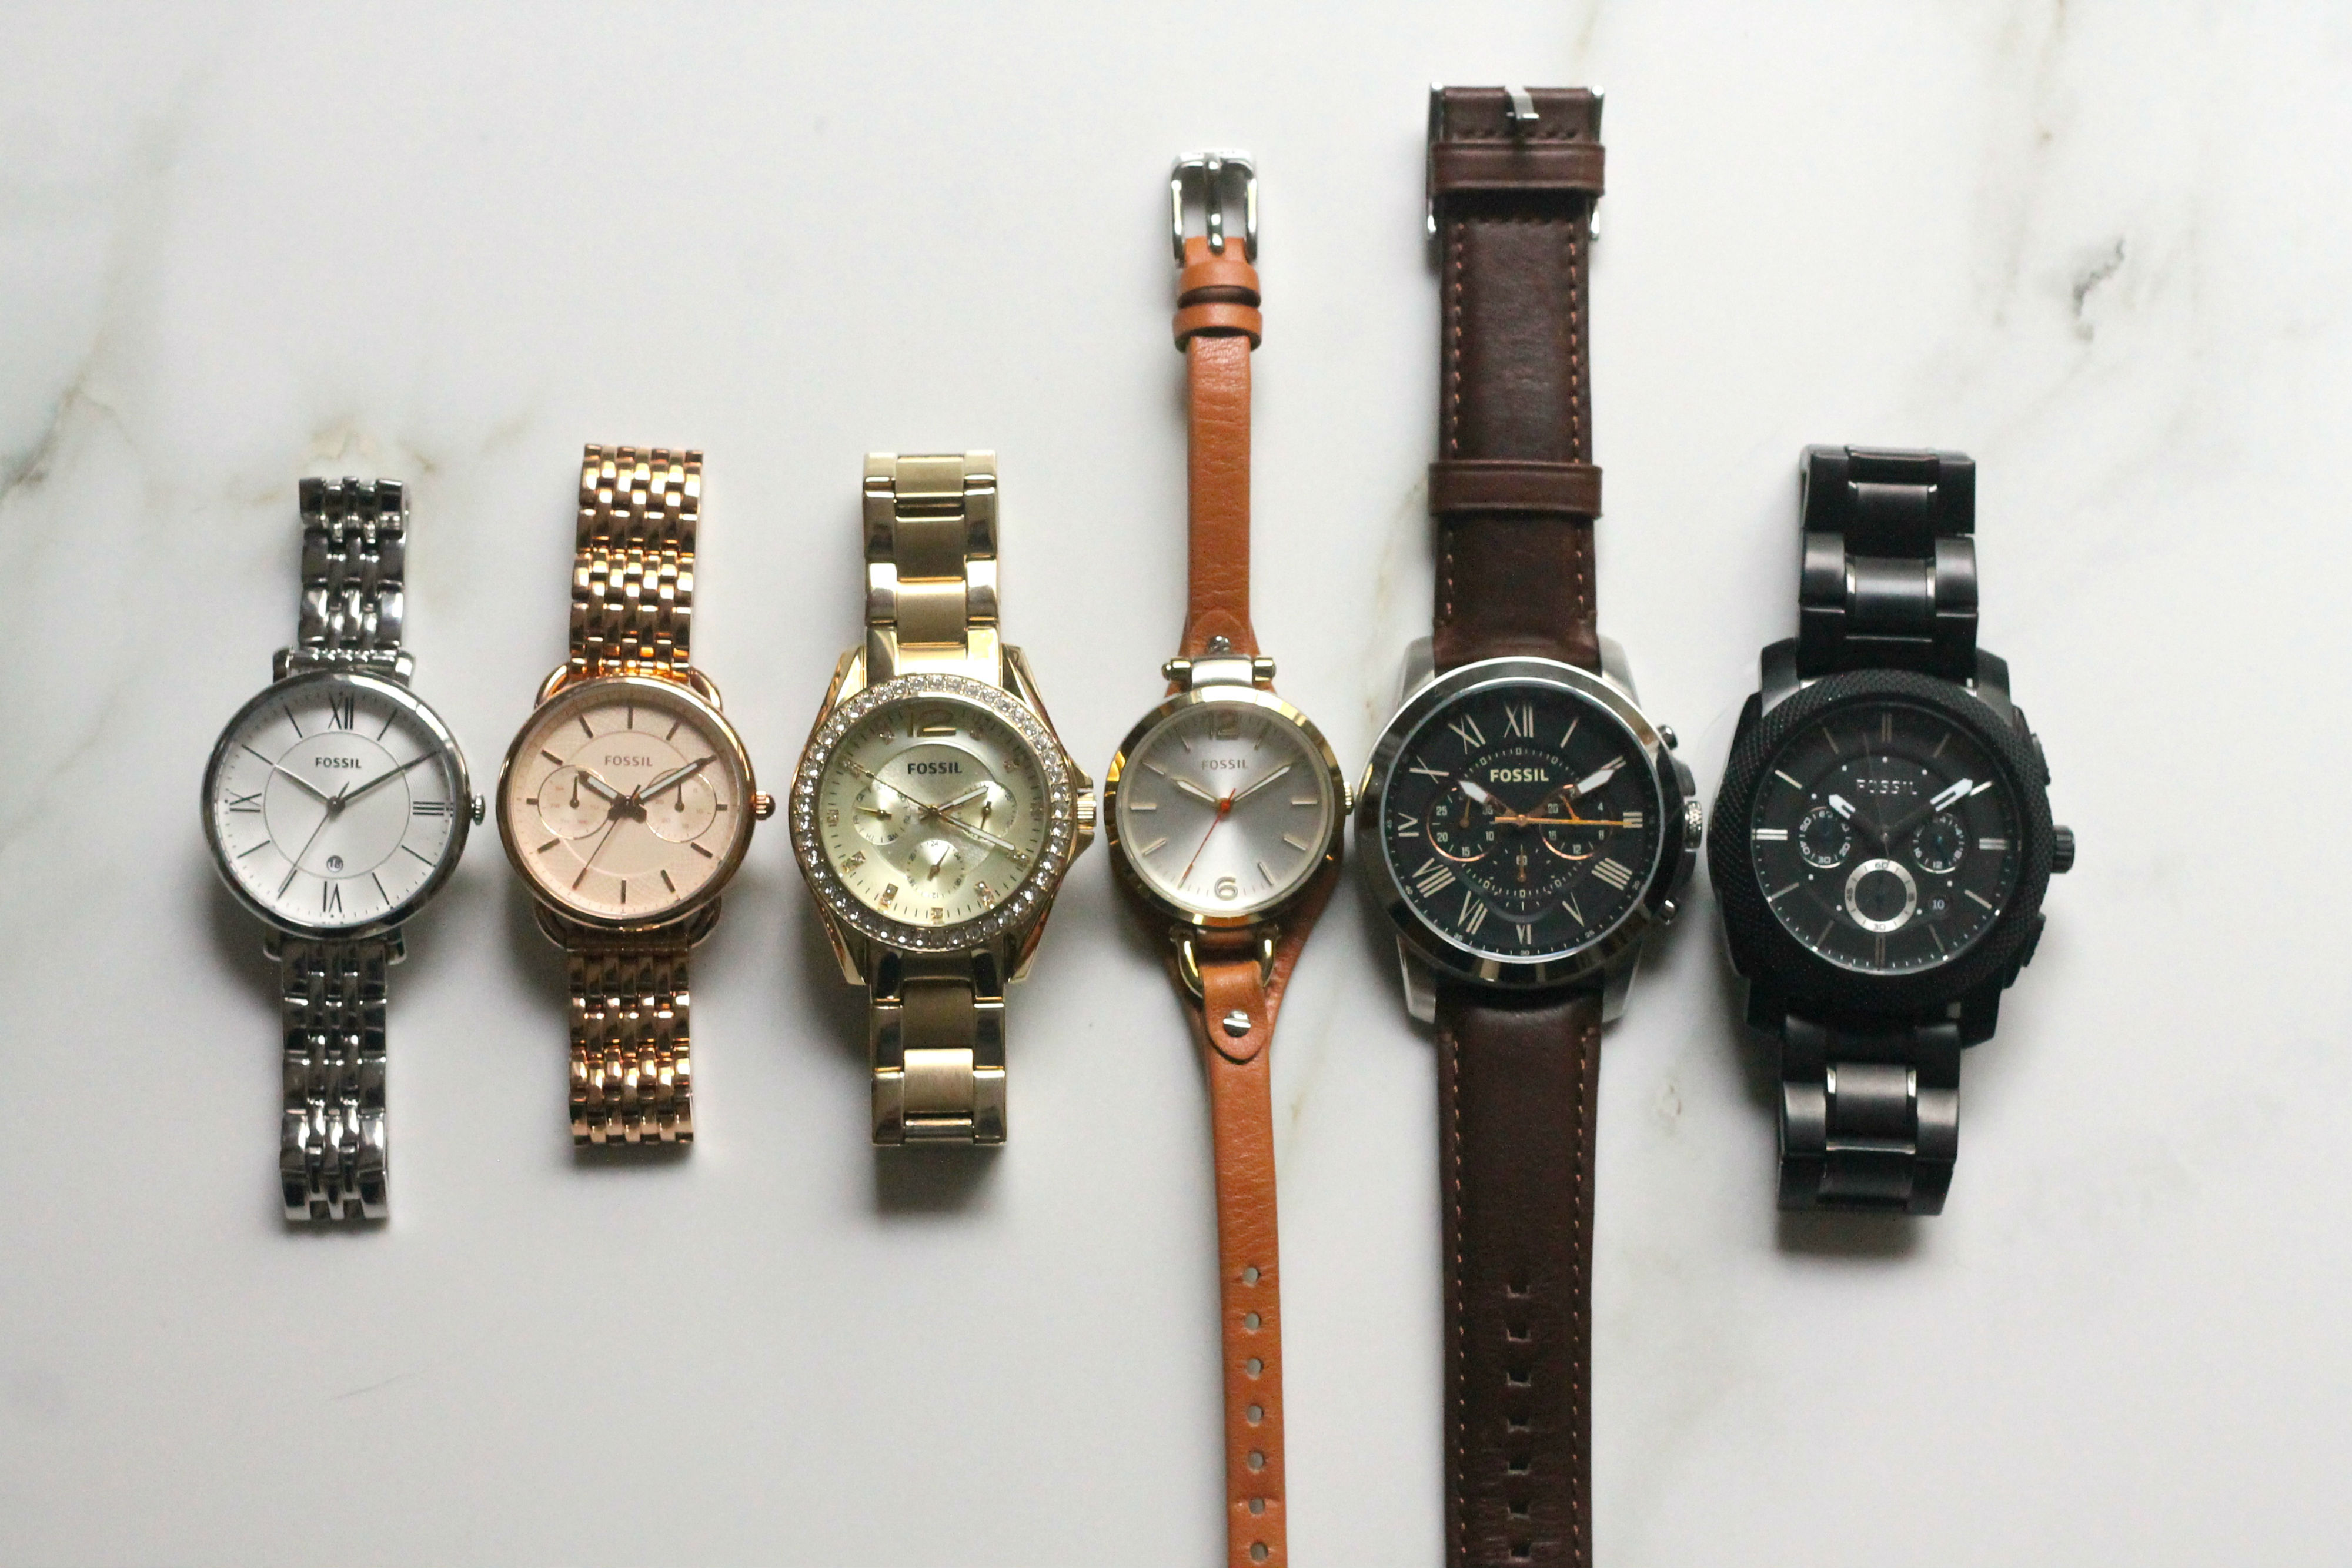 New Fossil Watches Launched At Best Buy Best Buy Blog